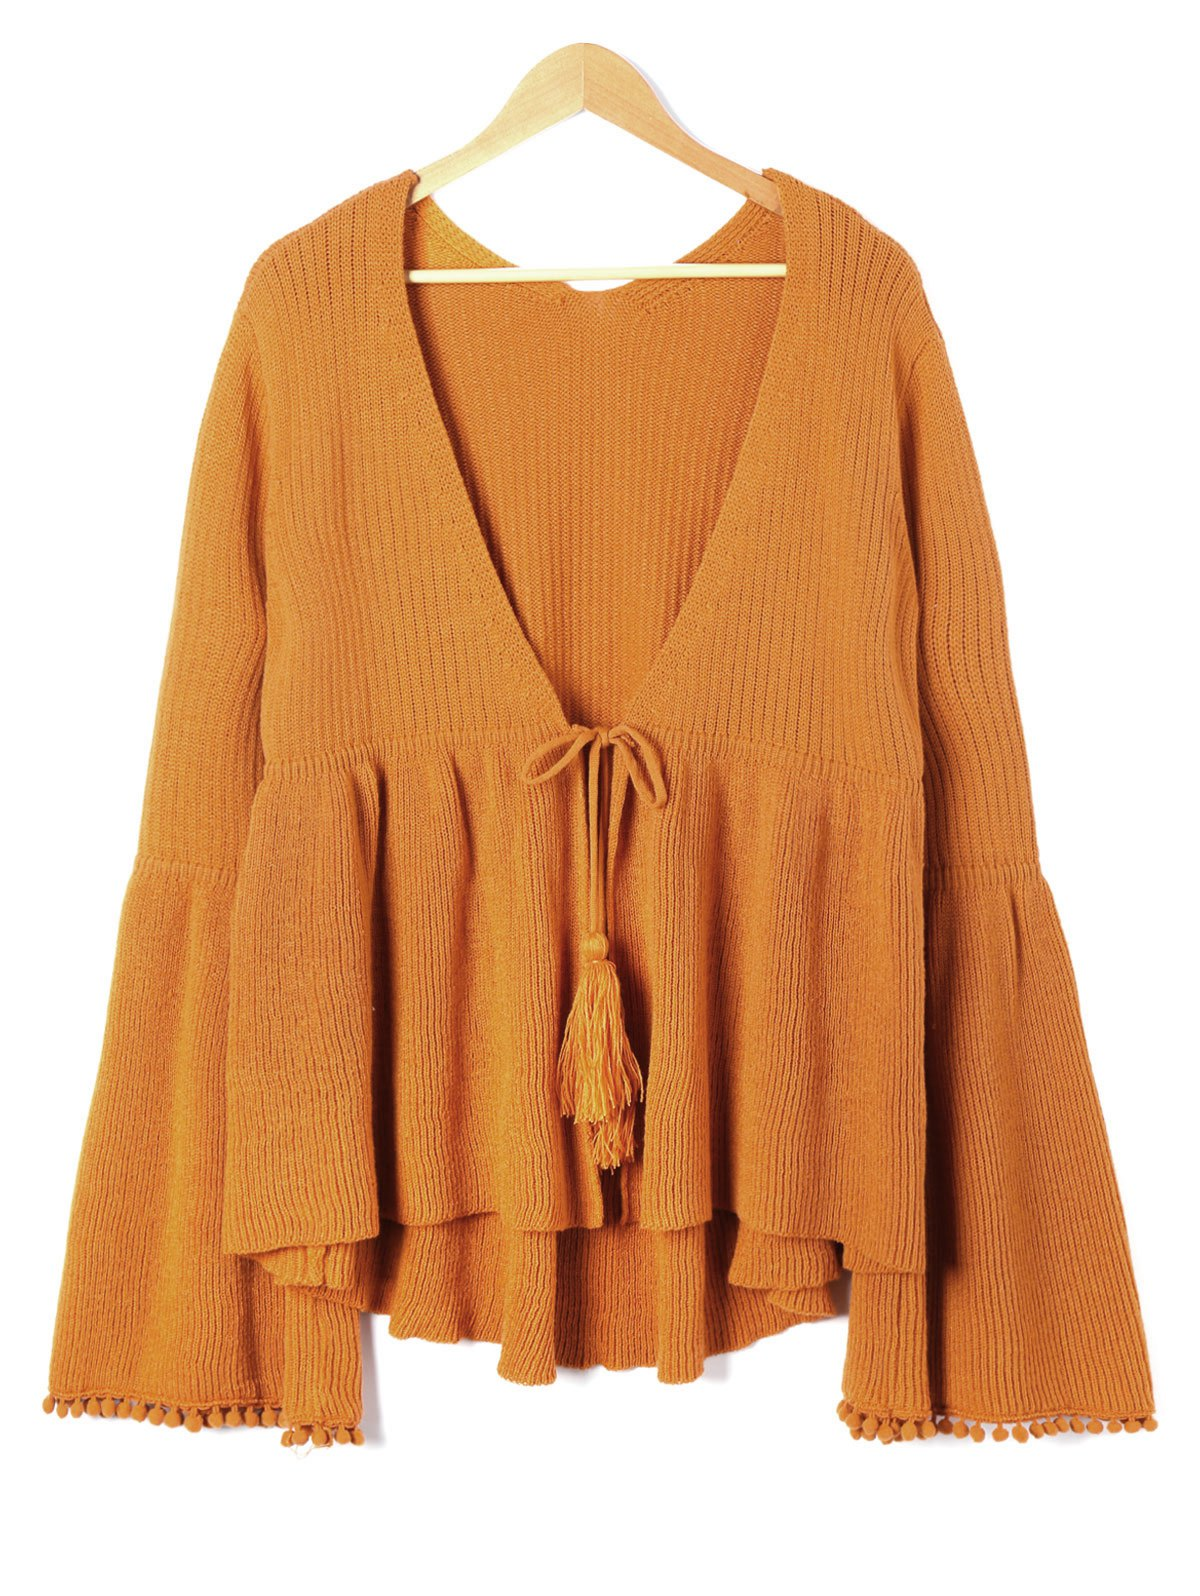 2018 Plus Size Flare Sleeve Tassel Tie Up Cardigan GOLD BROWN XL ...